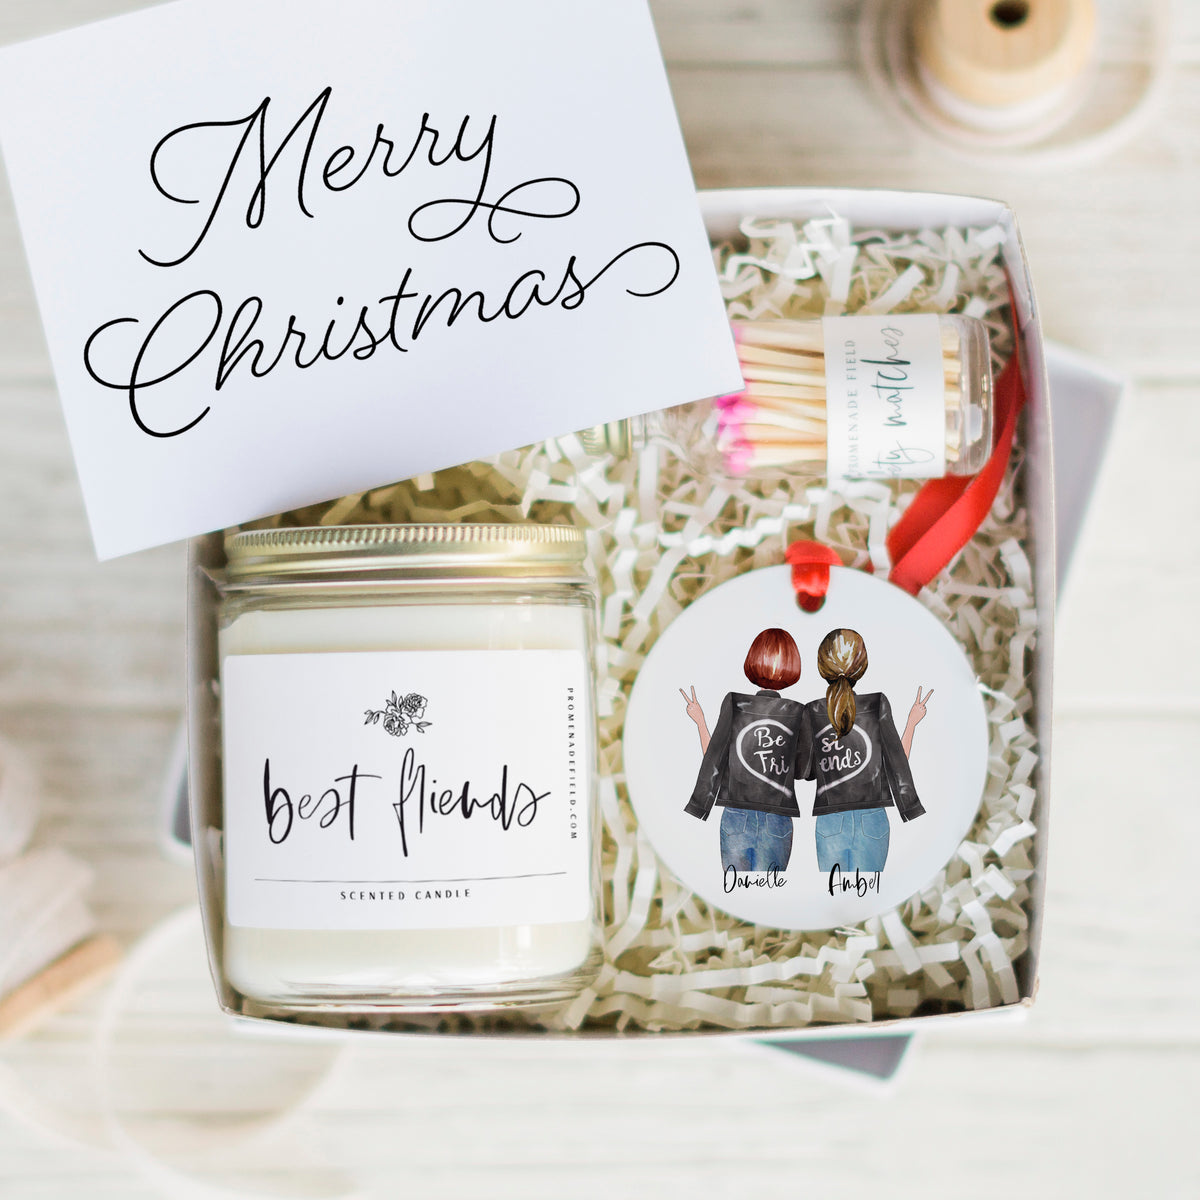 The Best Friends Candle & Ornament Gift Set